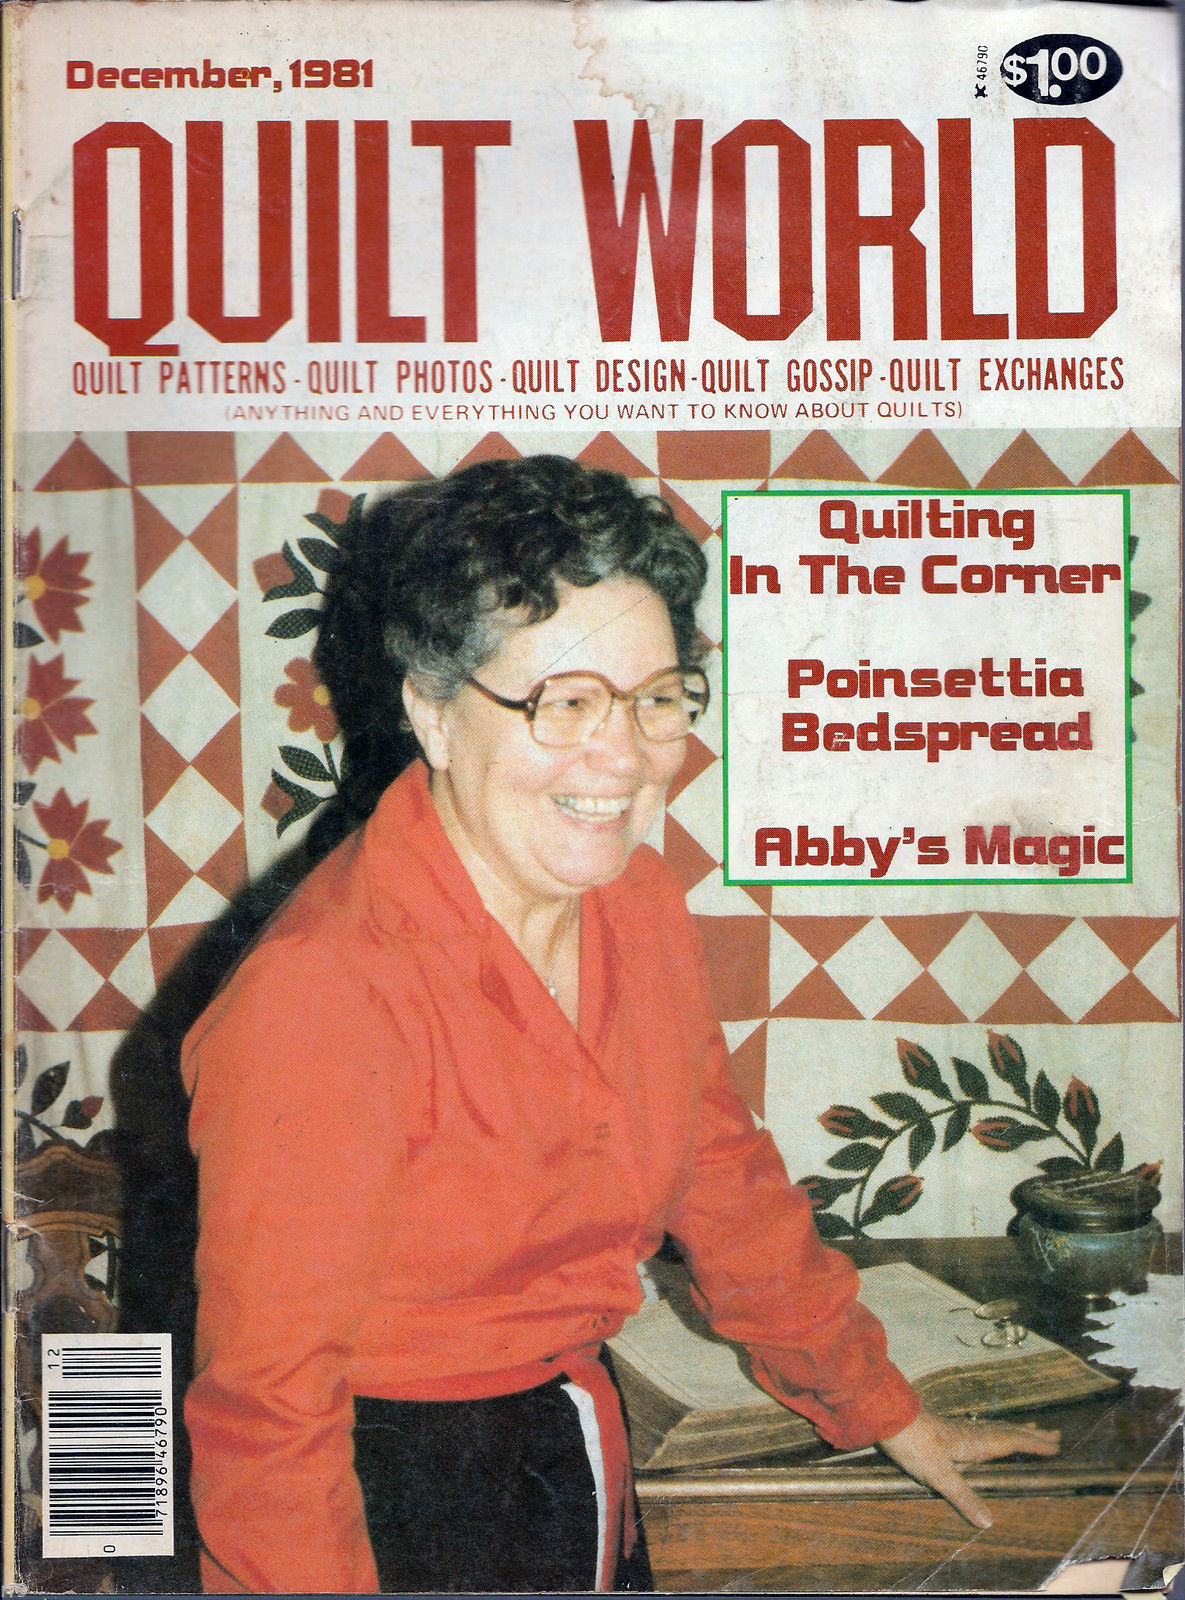 Primary image for Quilt World Magazime December 1981 Poinsettia Bedspread